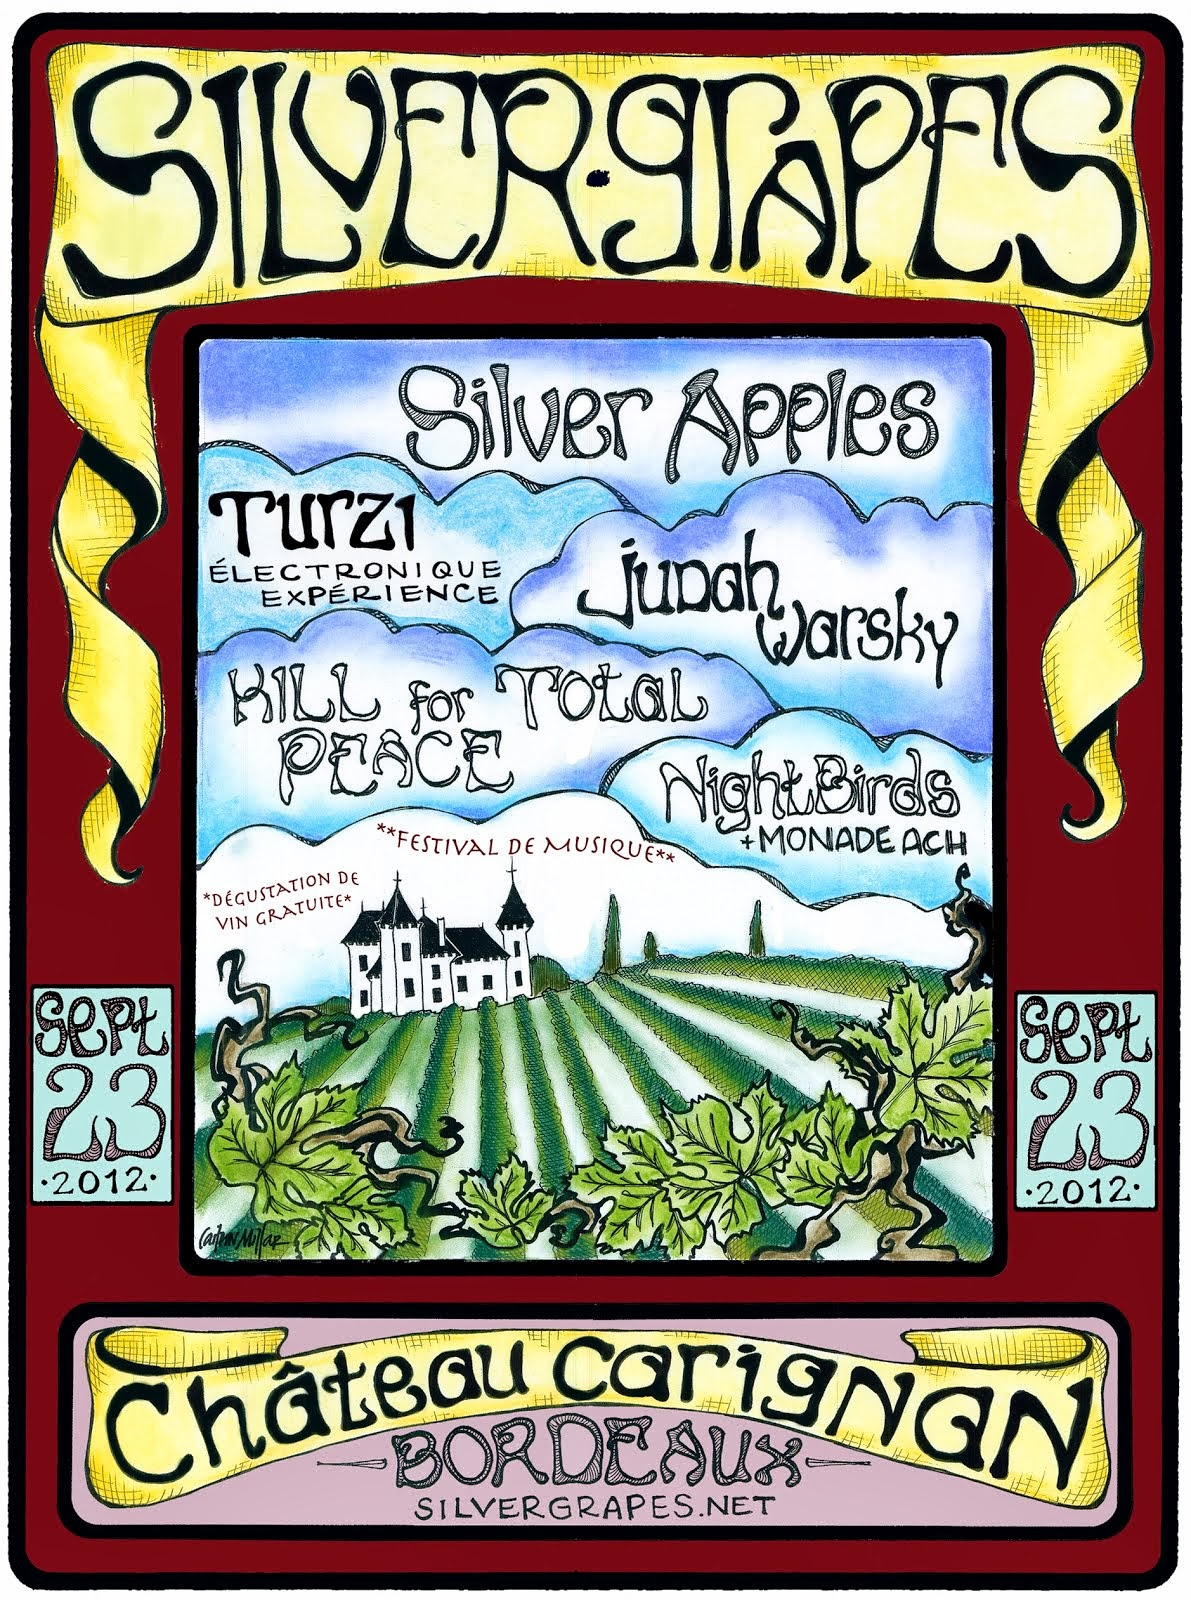 Silver Grapes Music Festival